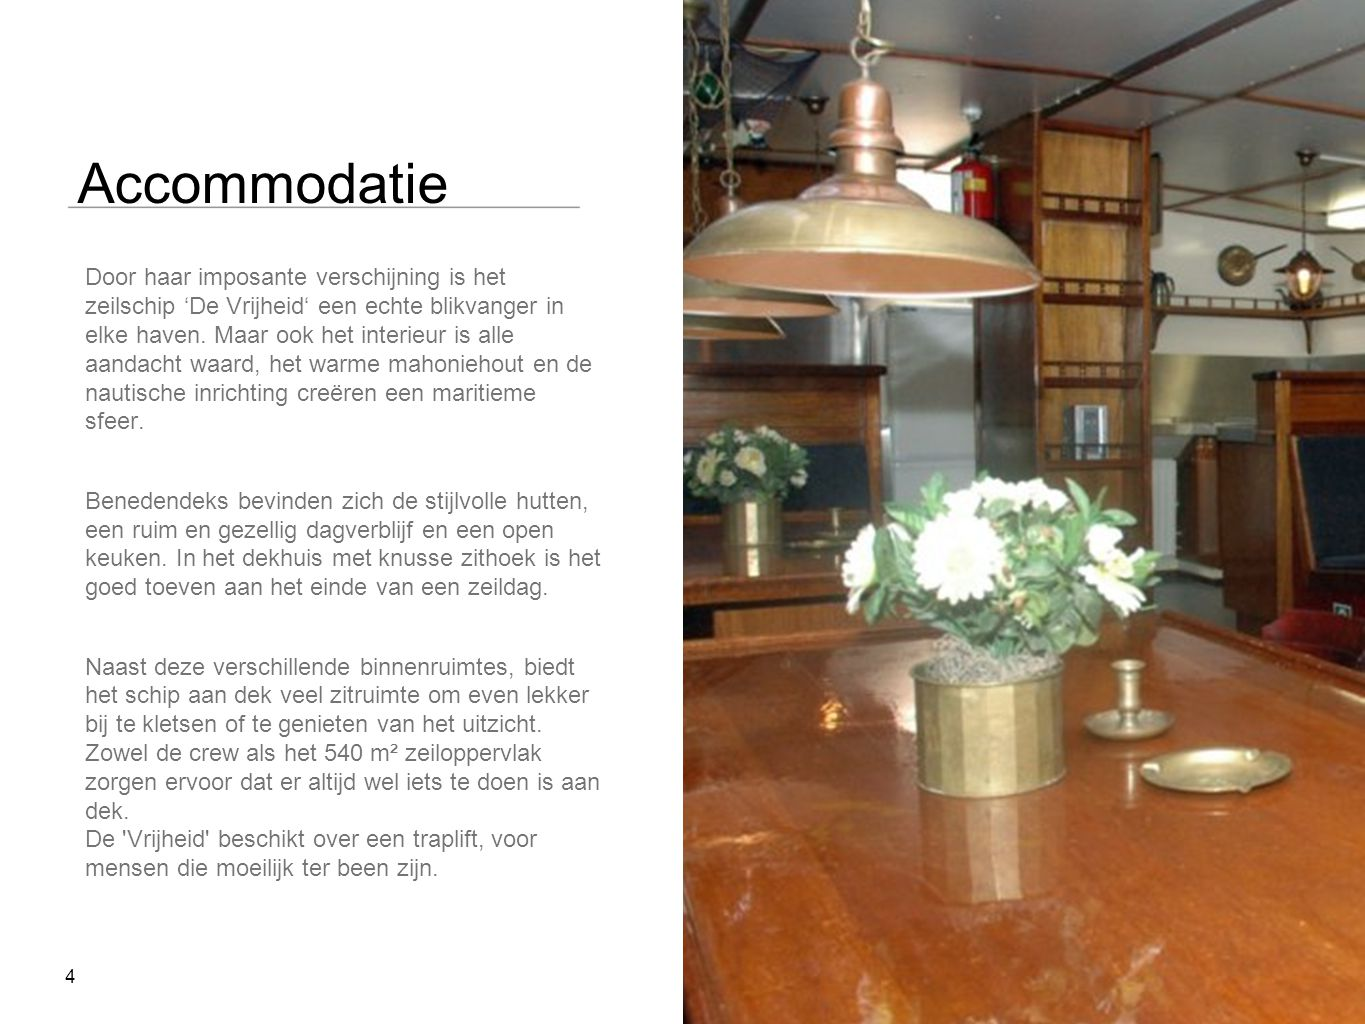 Accommodatie